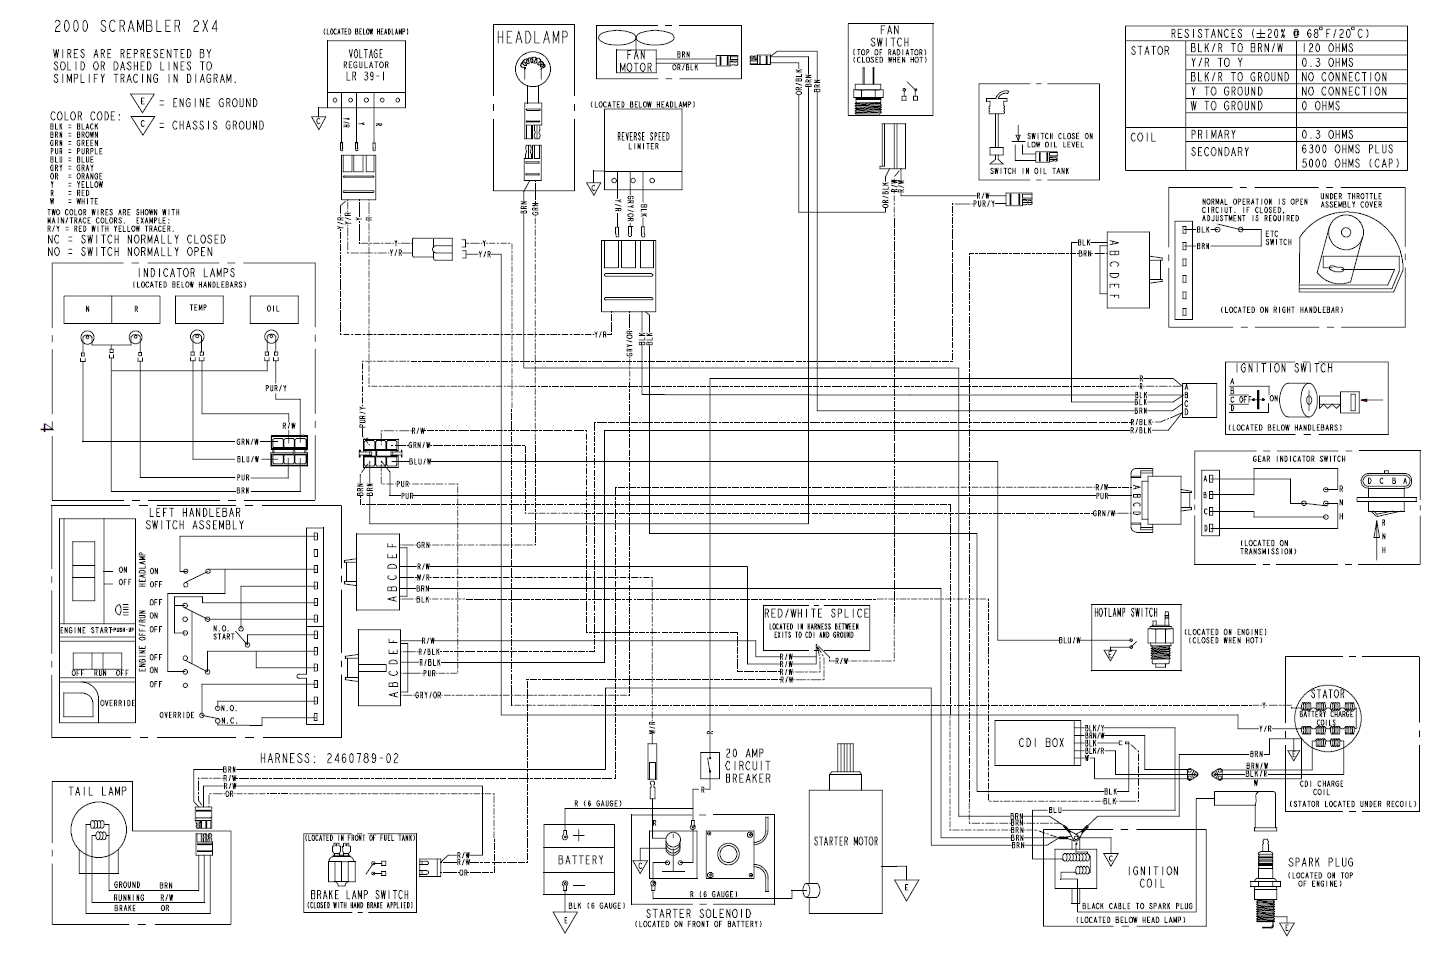 2009 polaris rzr wiring diagram wiring diagram database2008 rzr wiring diagram wiring diagram data schema 2009 polaris rzr wiring diagram